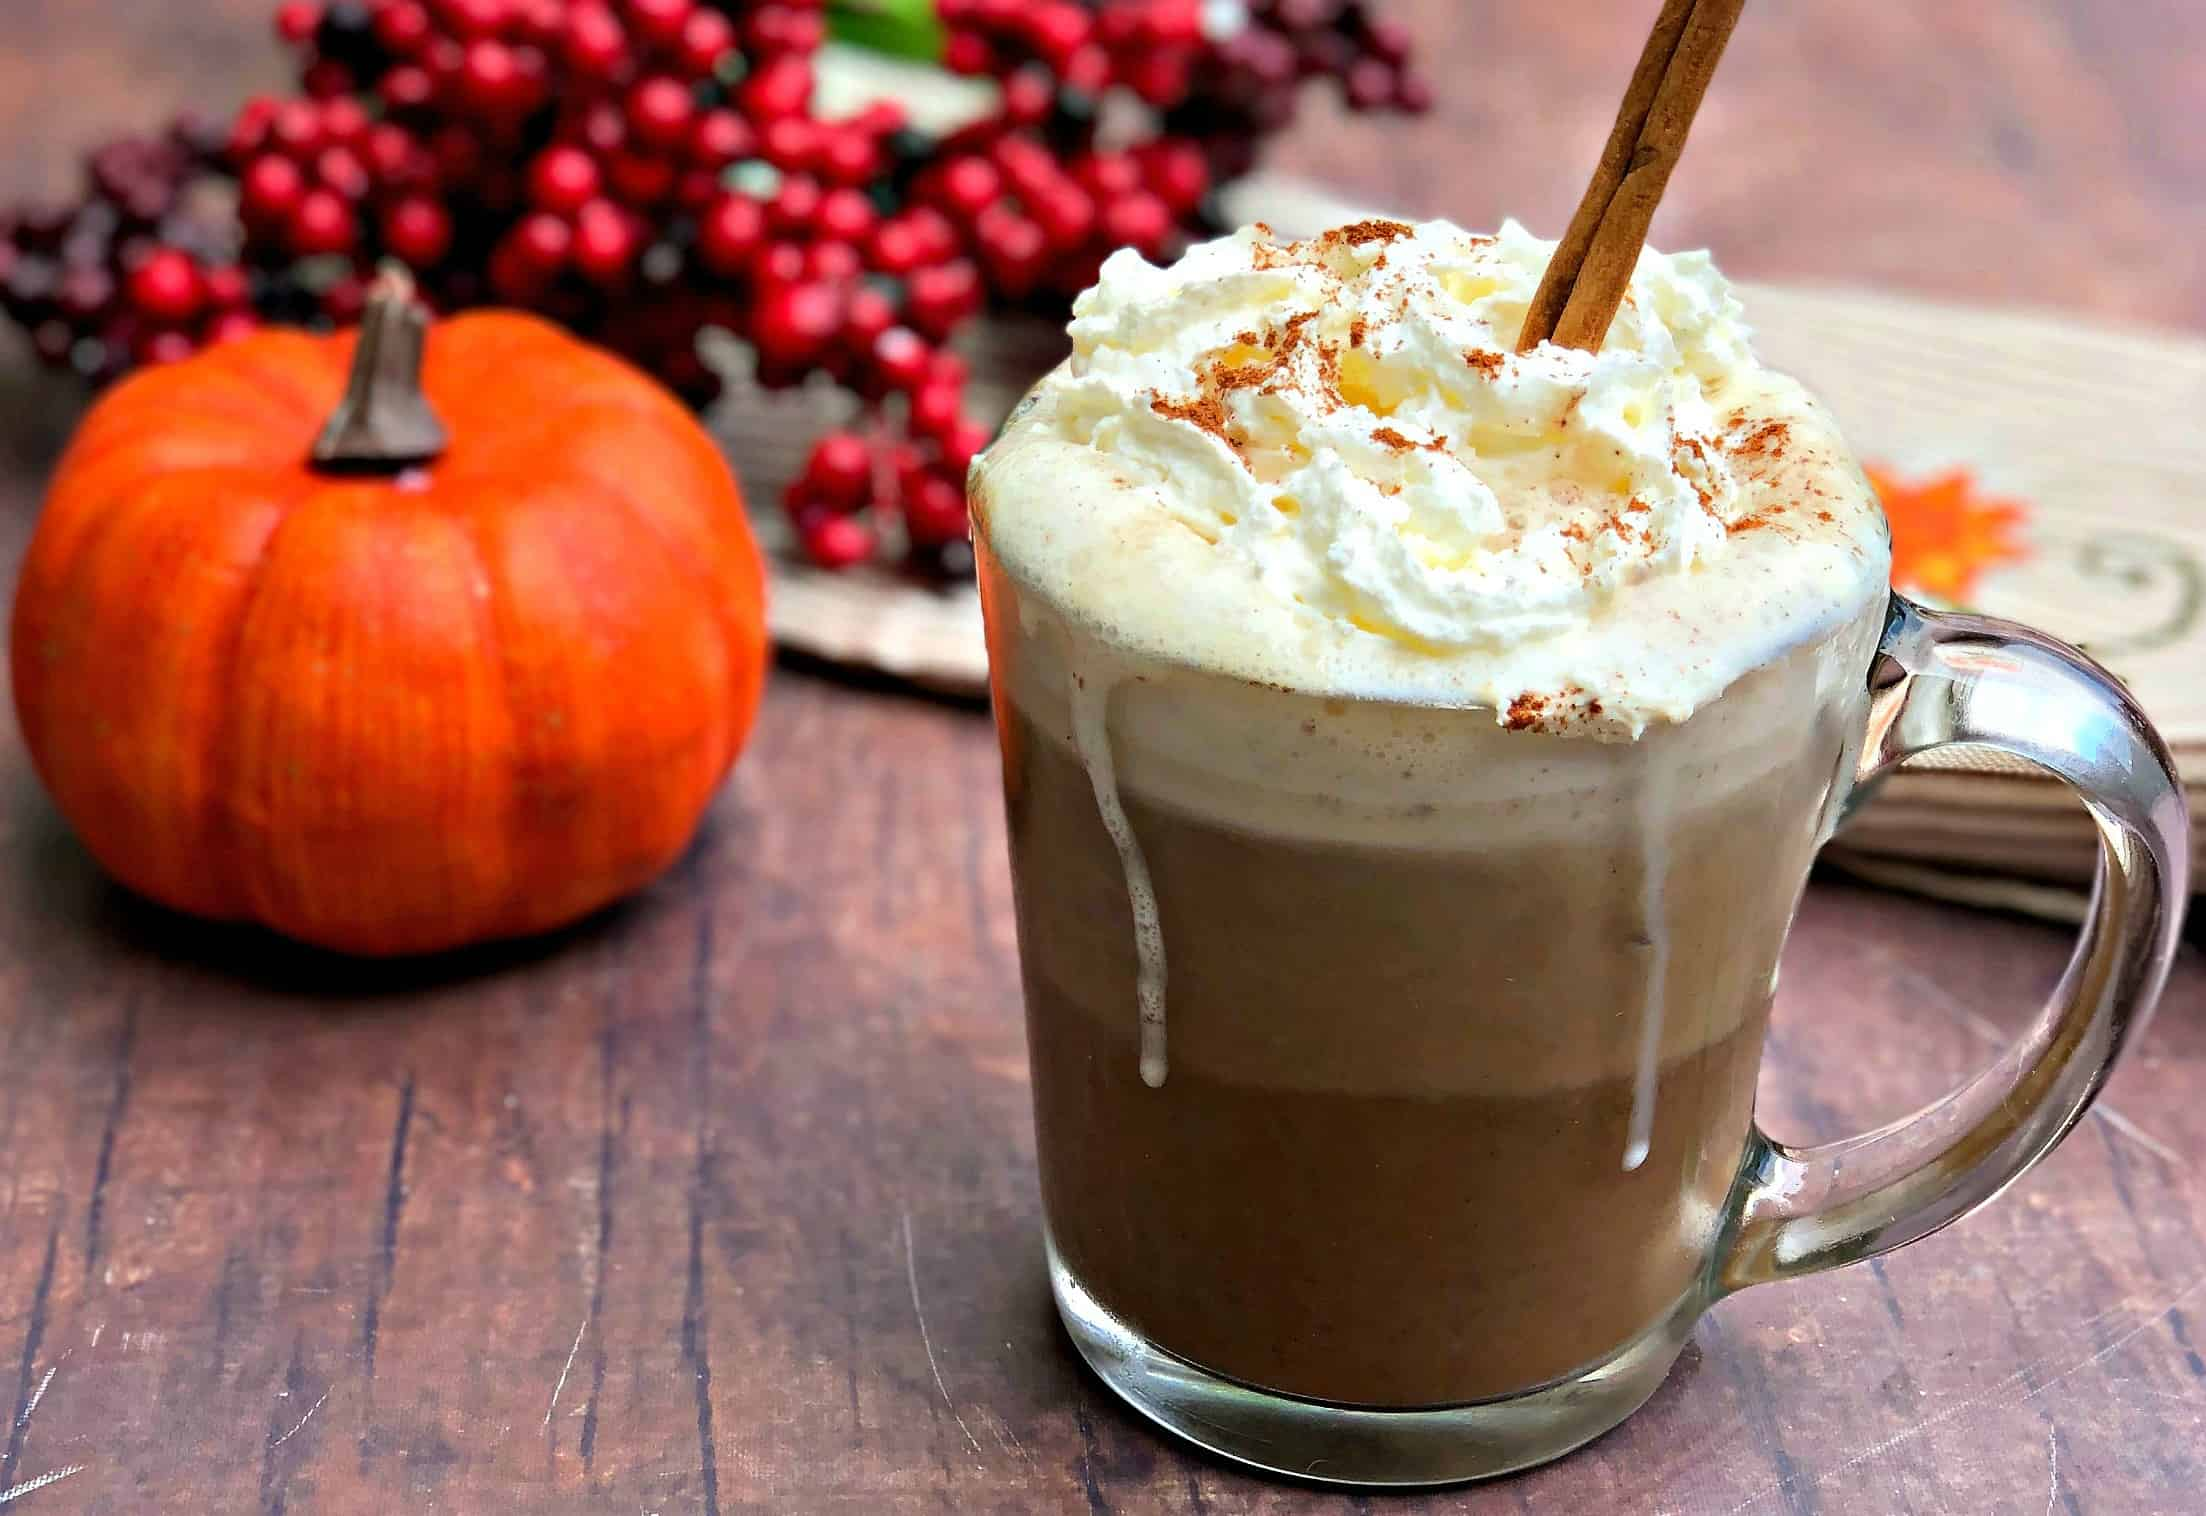 Keto Low Carb Copycat Starbucks Pumpkin Spice Latte